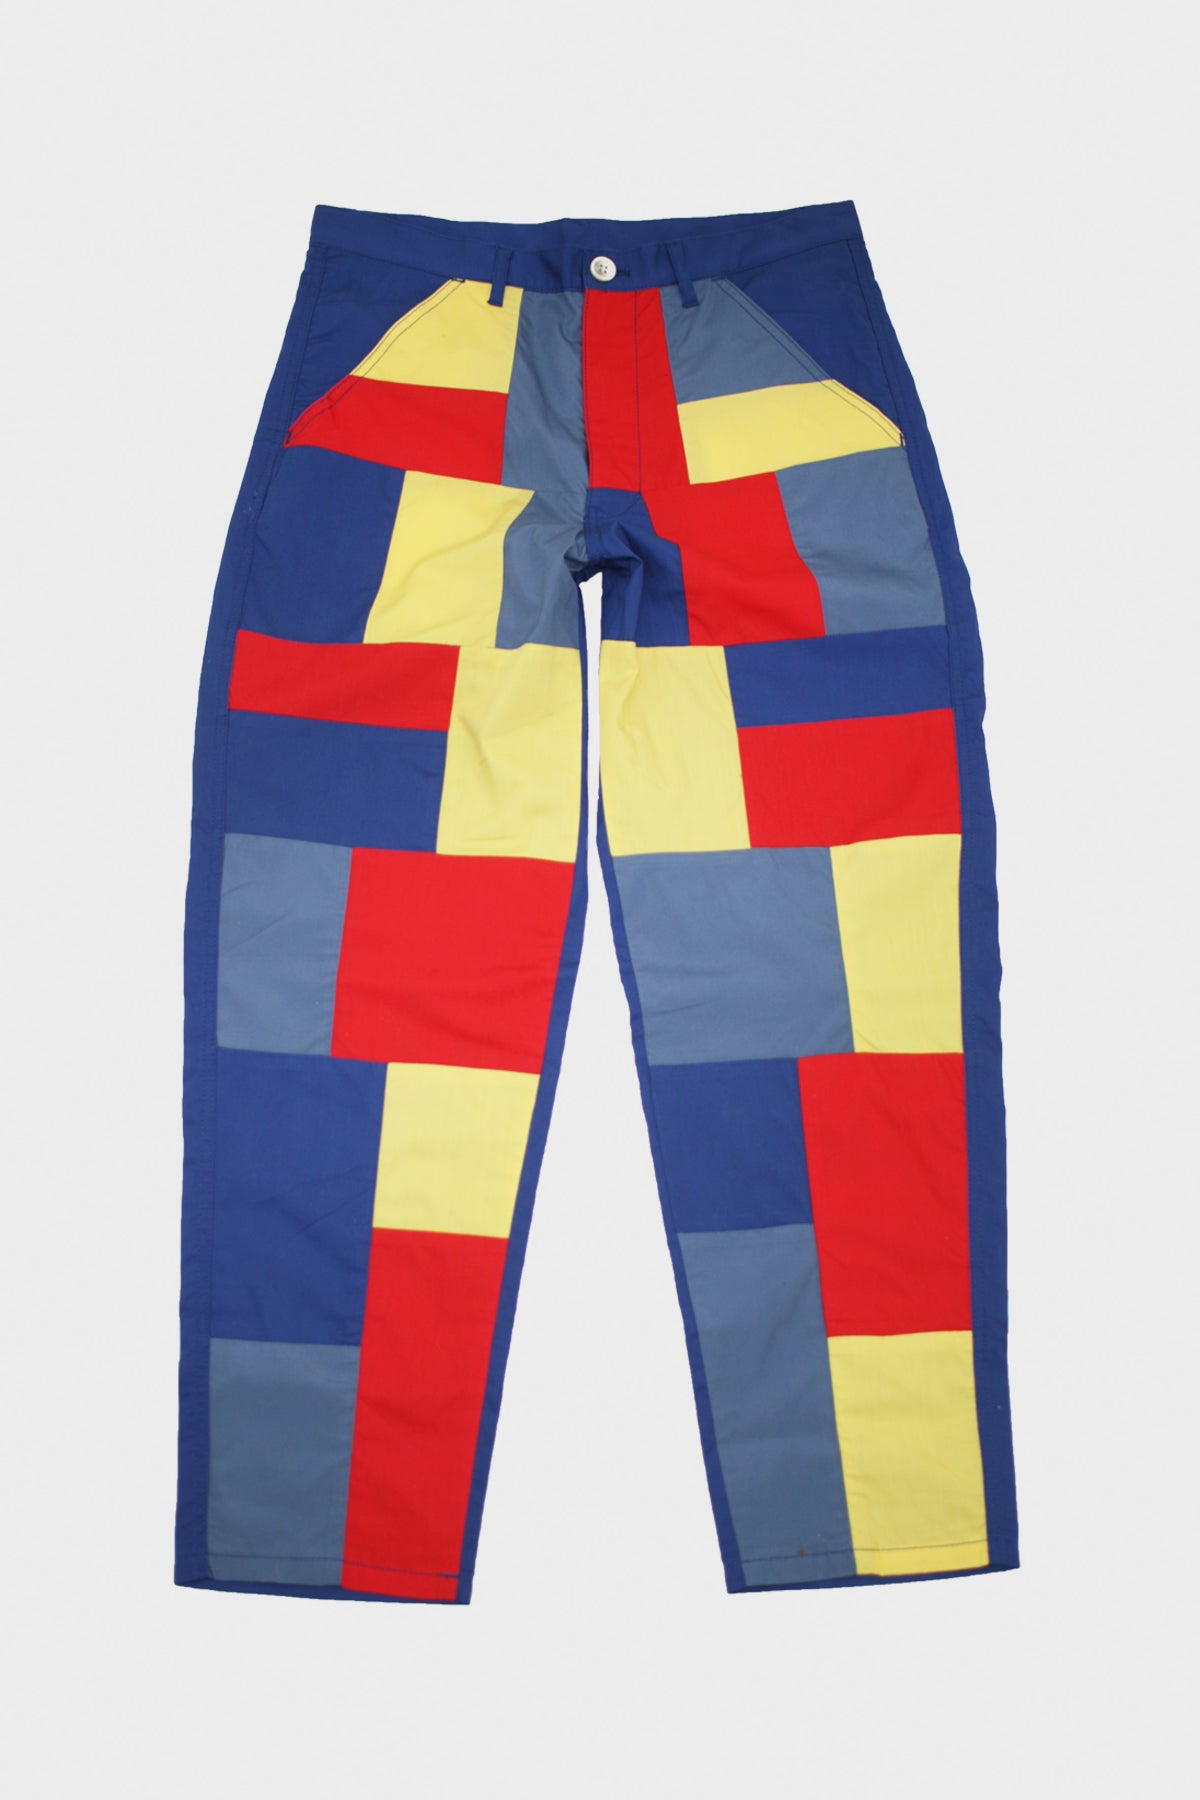 Comme des Garçons SHIRT - Woven Patchwork Pants - Red/Yellow/Blue - Canoe Club